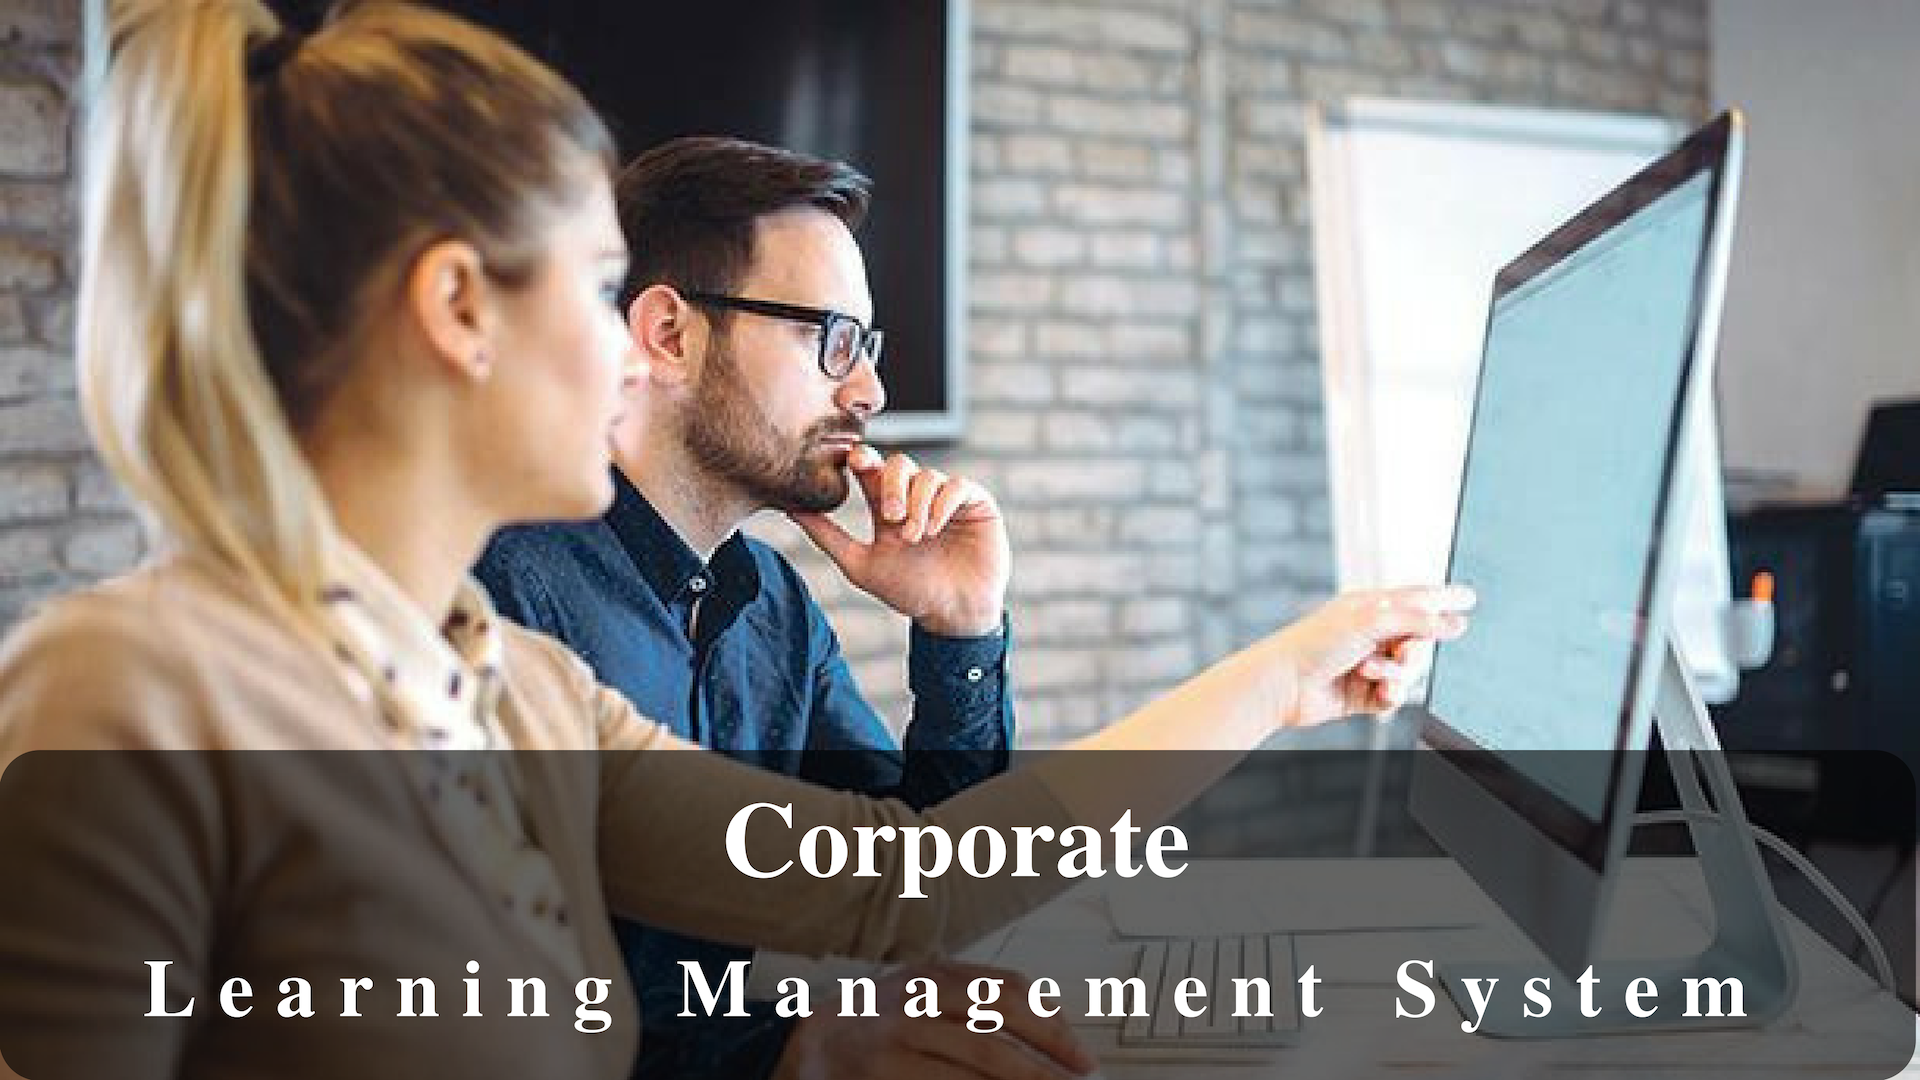 Importance And Benefits Of Corporate LMS